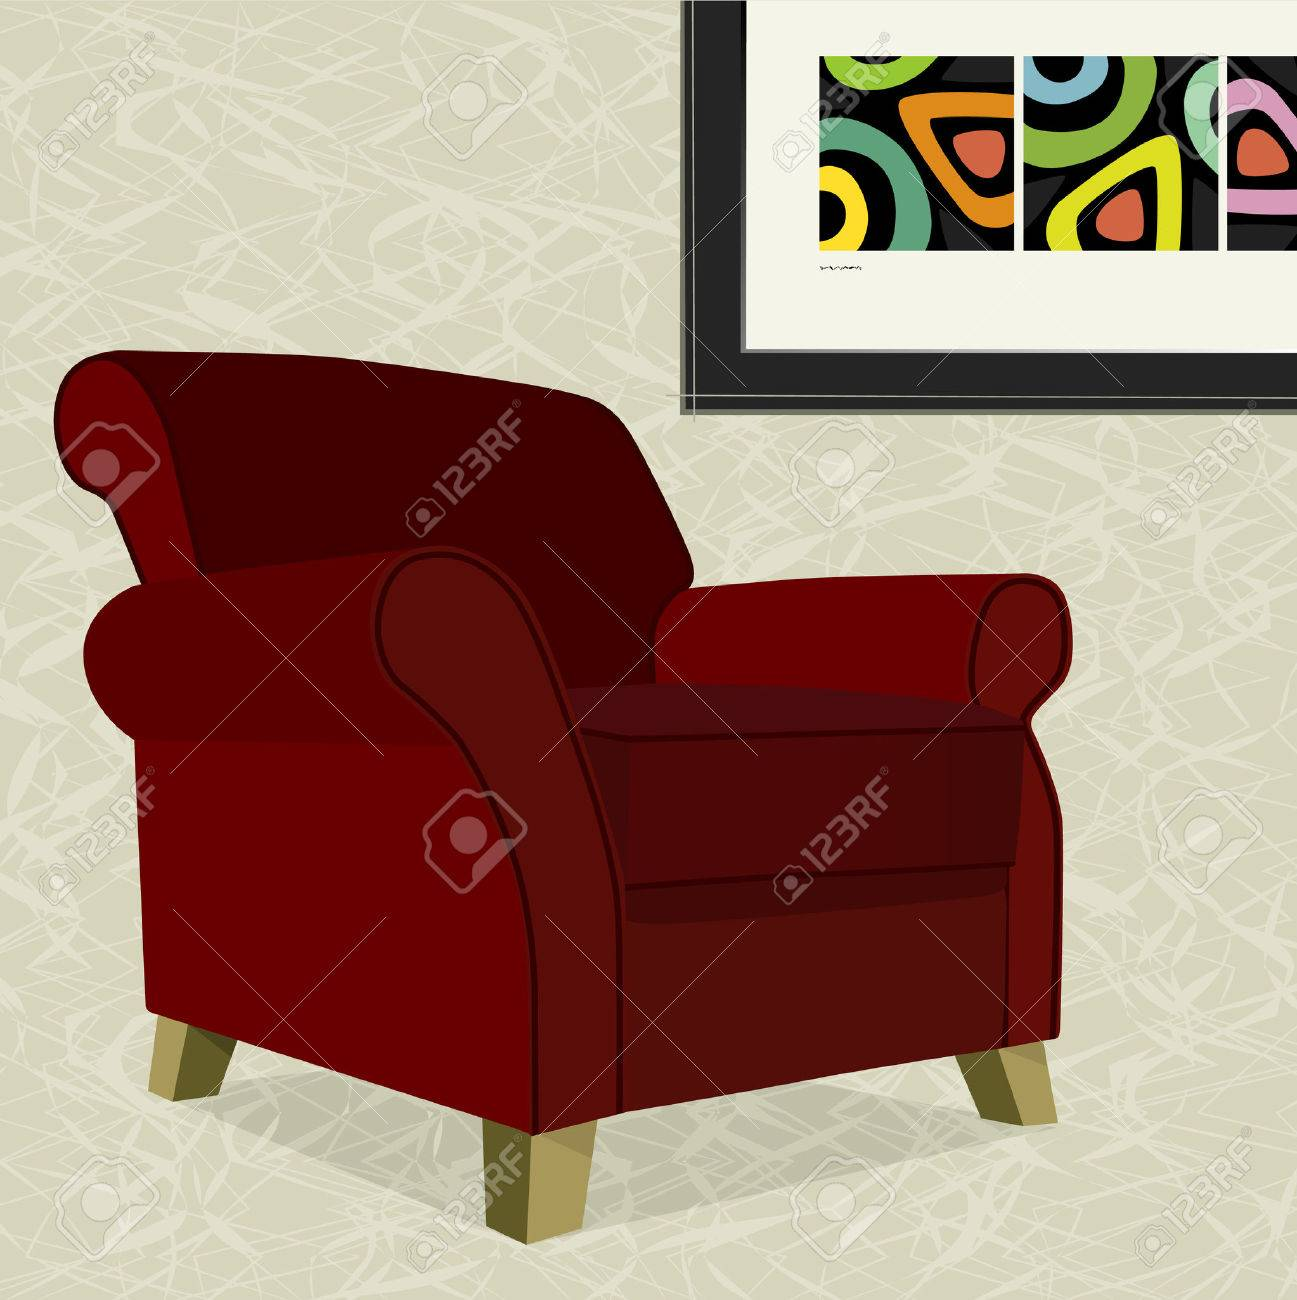 whimsical comfy overstuffed armchair with abstract painting